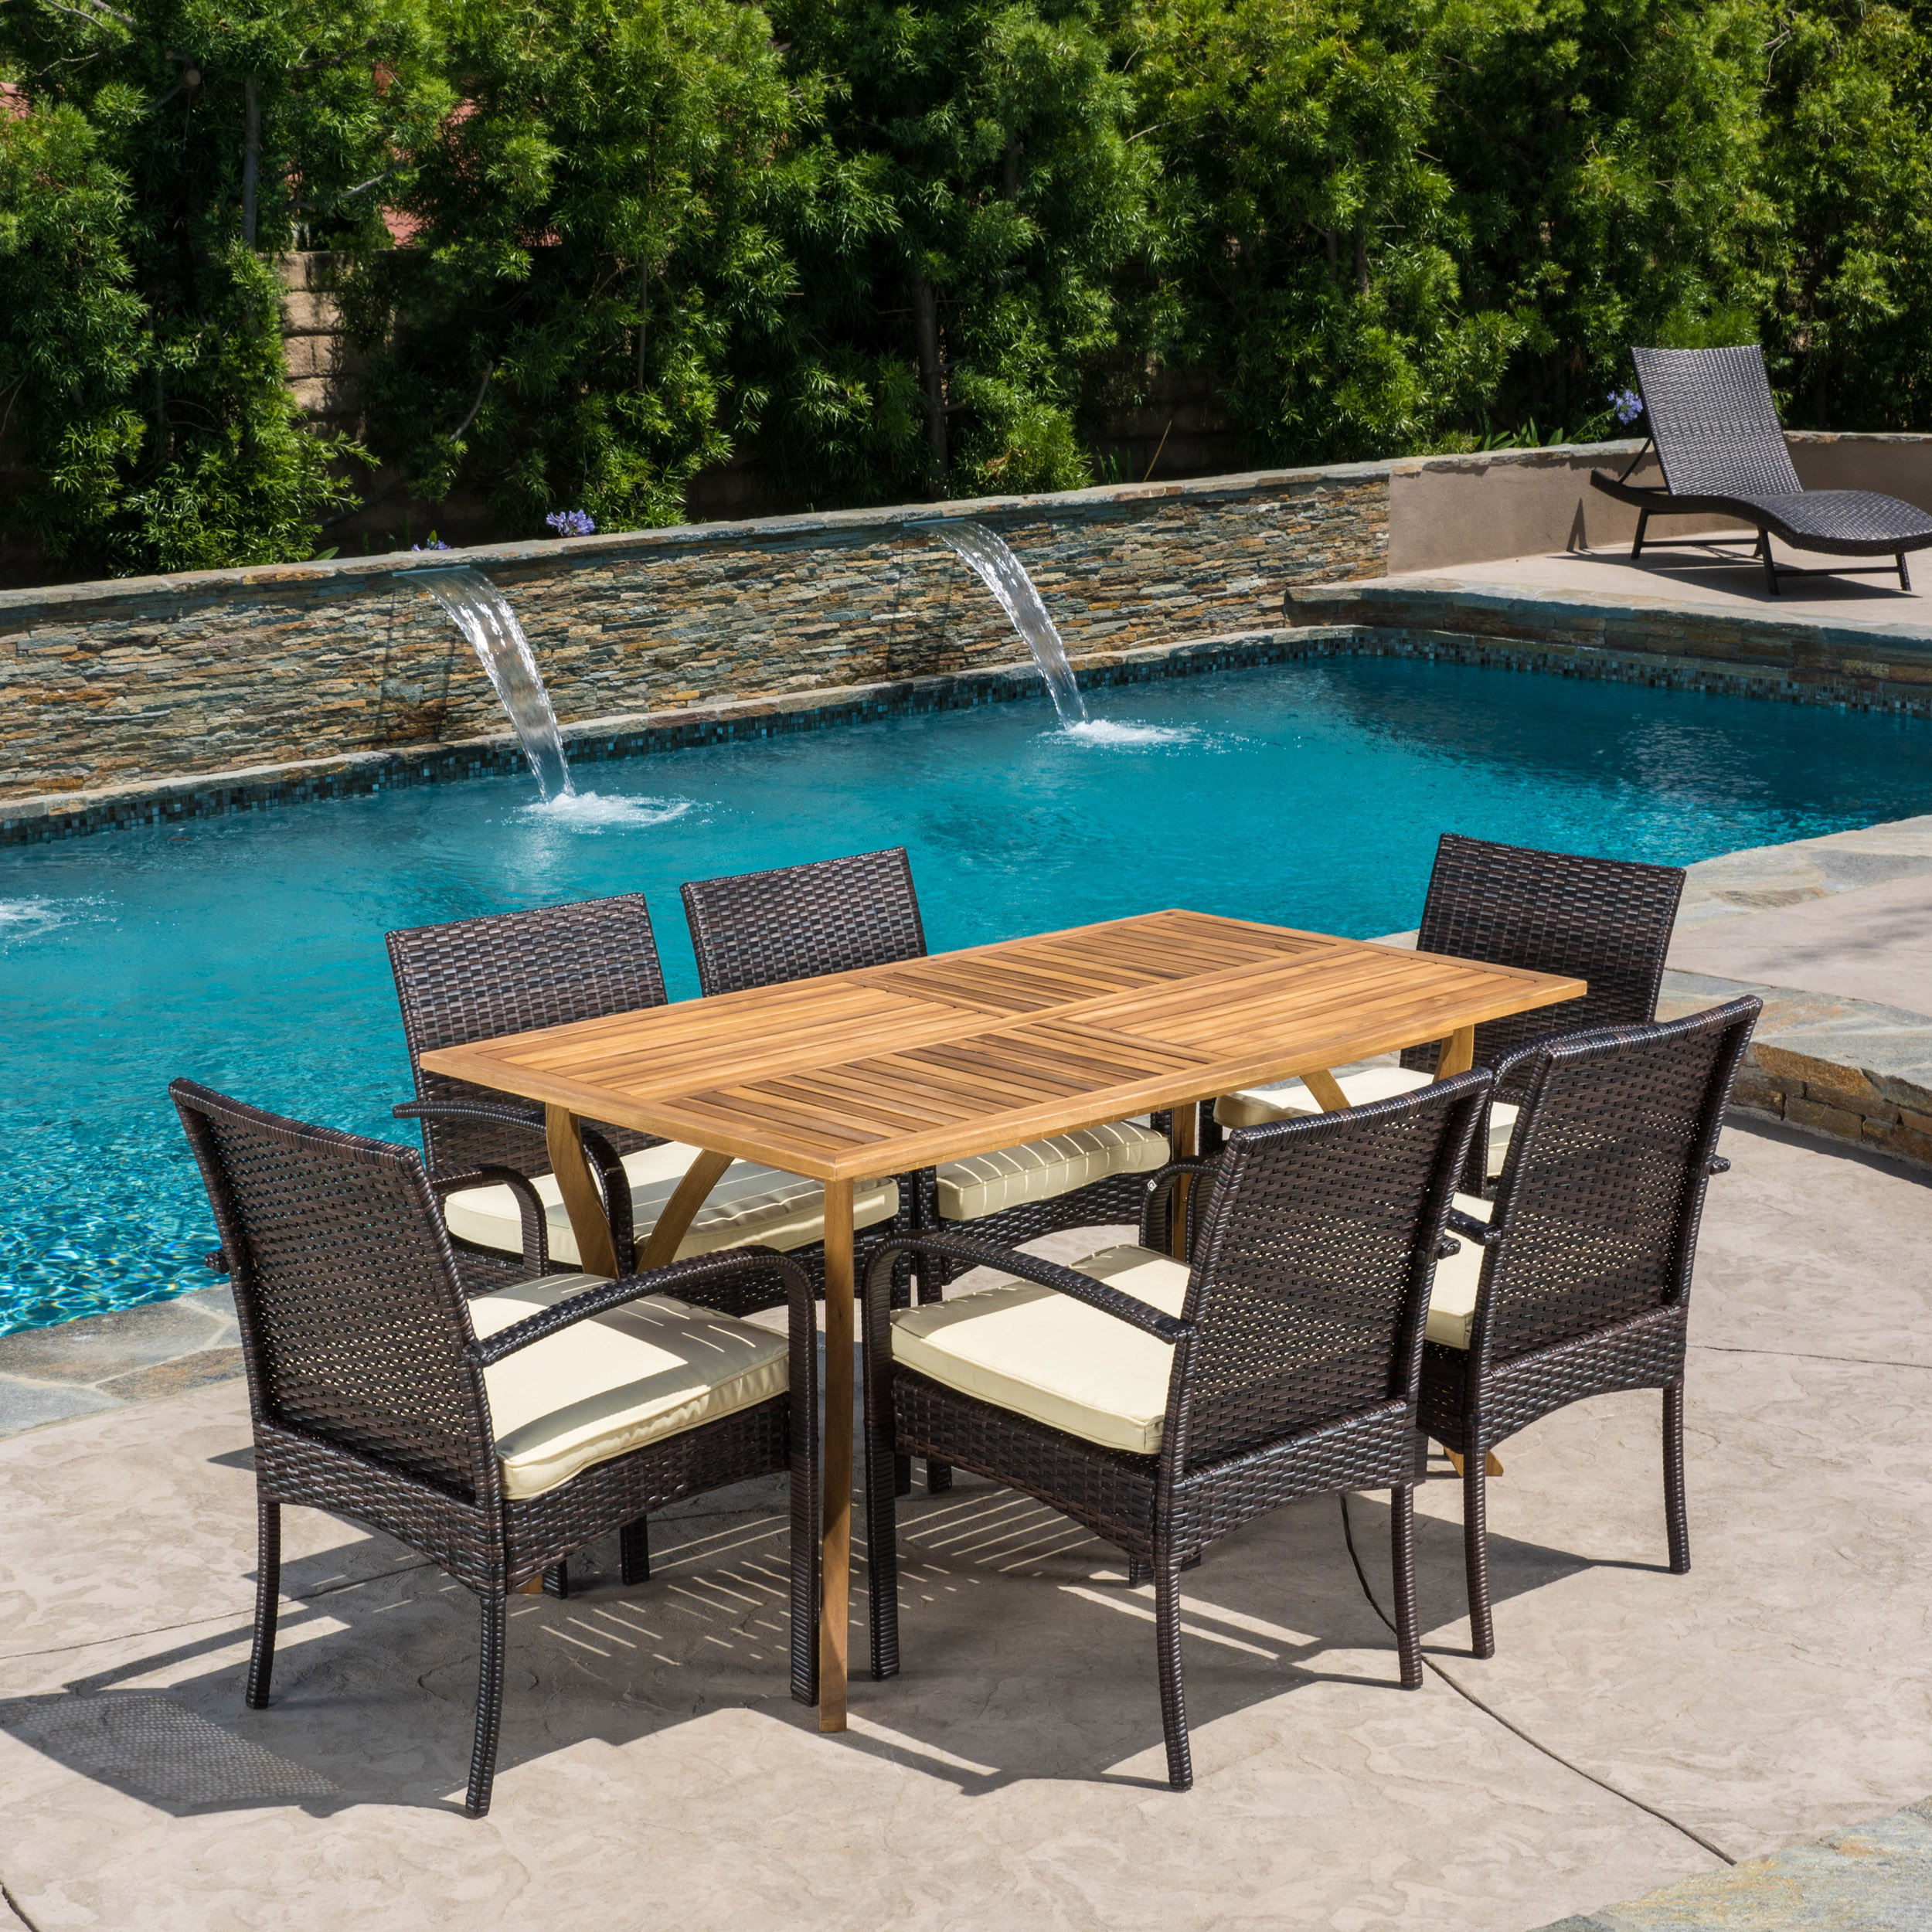 Voyage Outdoor Wicker and Acacia Wood 7-Piece Dining Set, Teak Finish and Crme